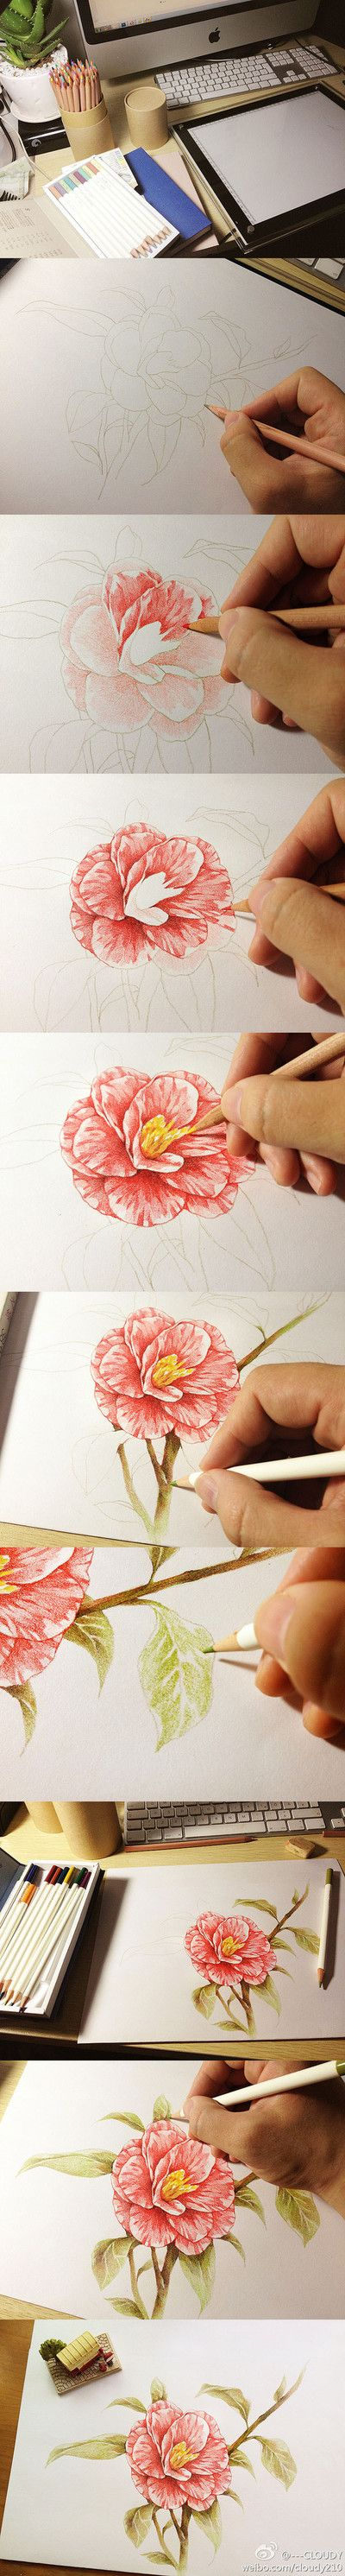 How to Draw with Colored Pencils